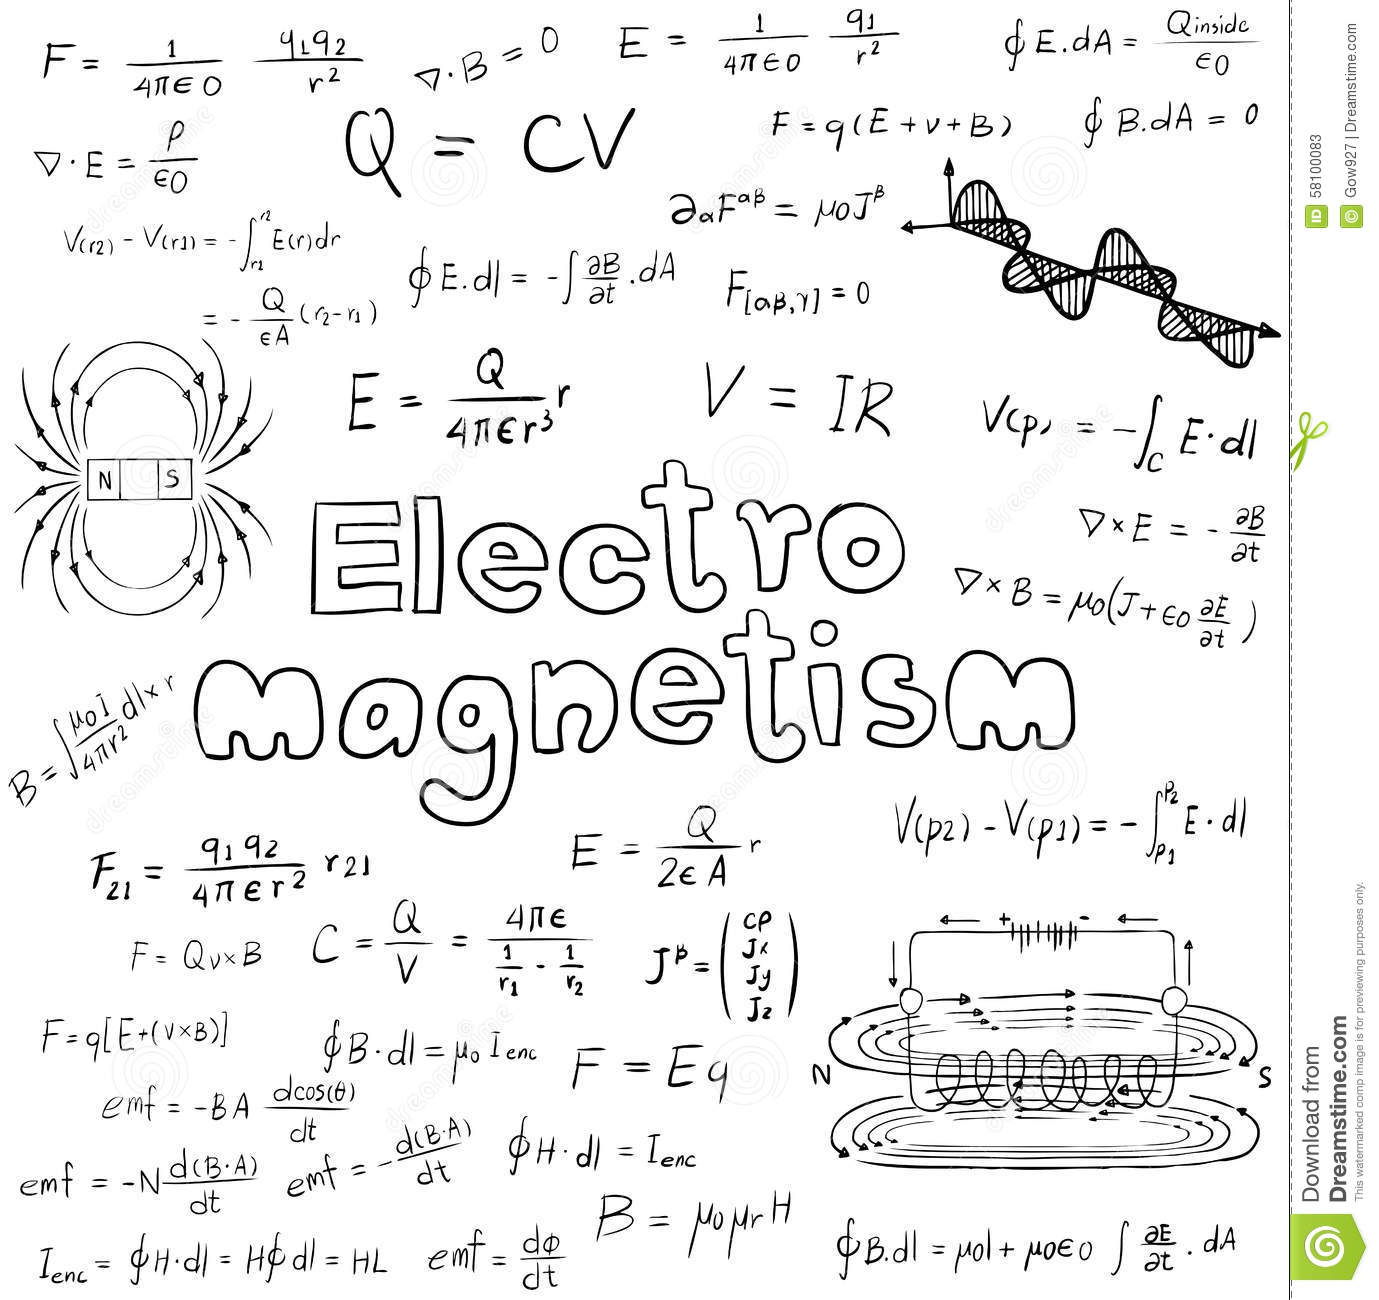 electromagnetism physics science 1 investigation essay ® physics 1 and 2 inquiry-based lab 261 ap physics 2 investigation 5: electromagnetic induction rubrics for science practices in ap physics 1 and 2.